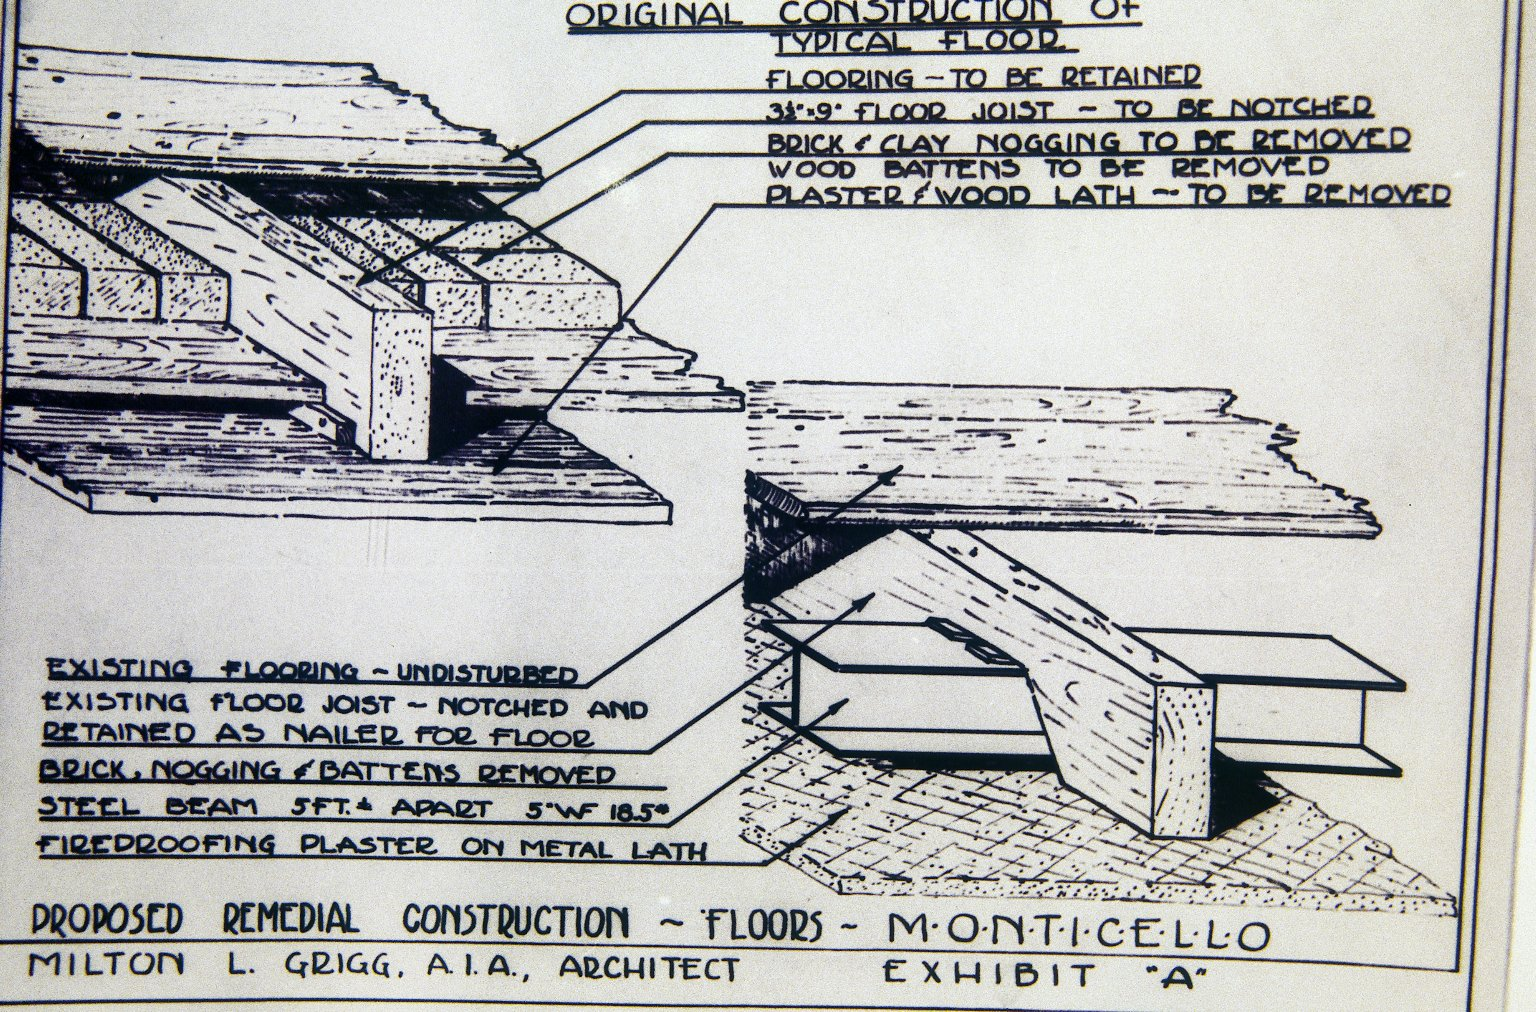 Monticello, restoration, sketch of original flow systems and proposed remedial action